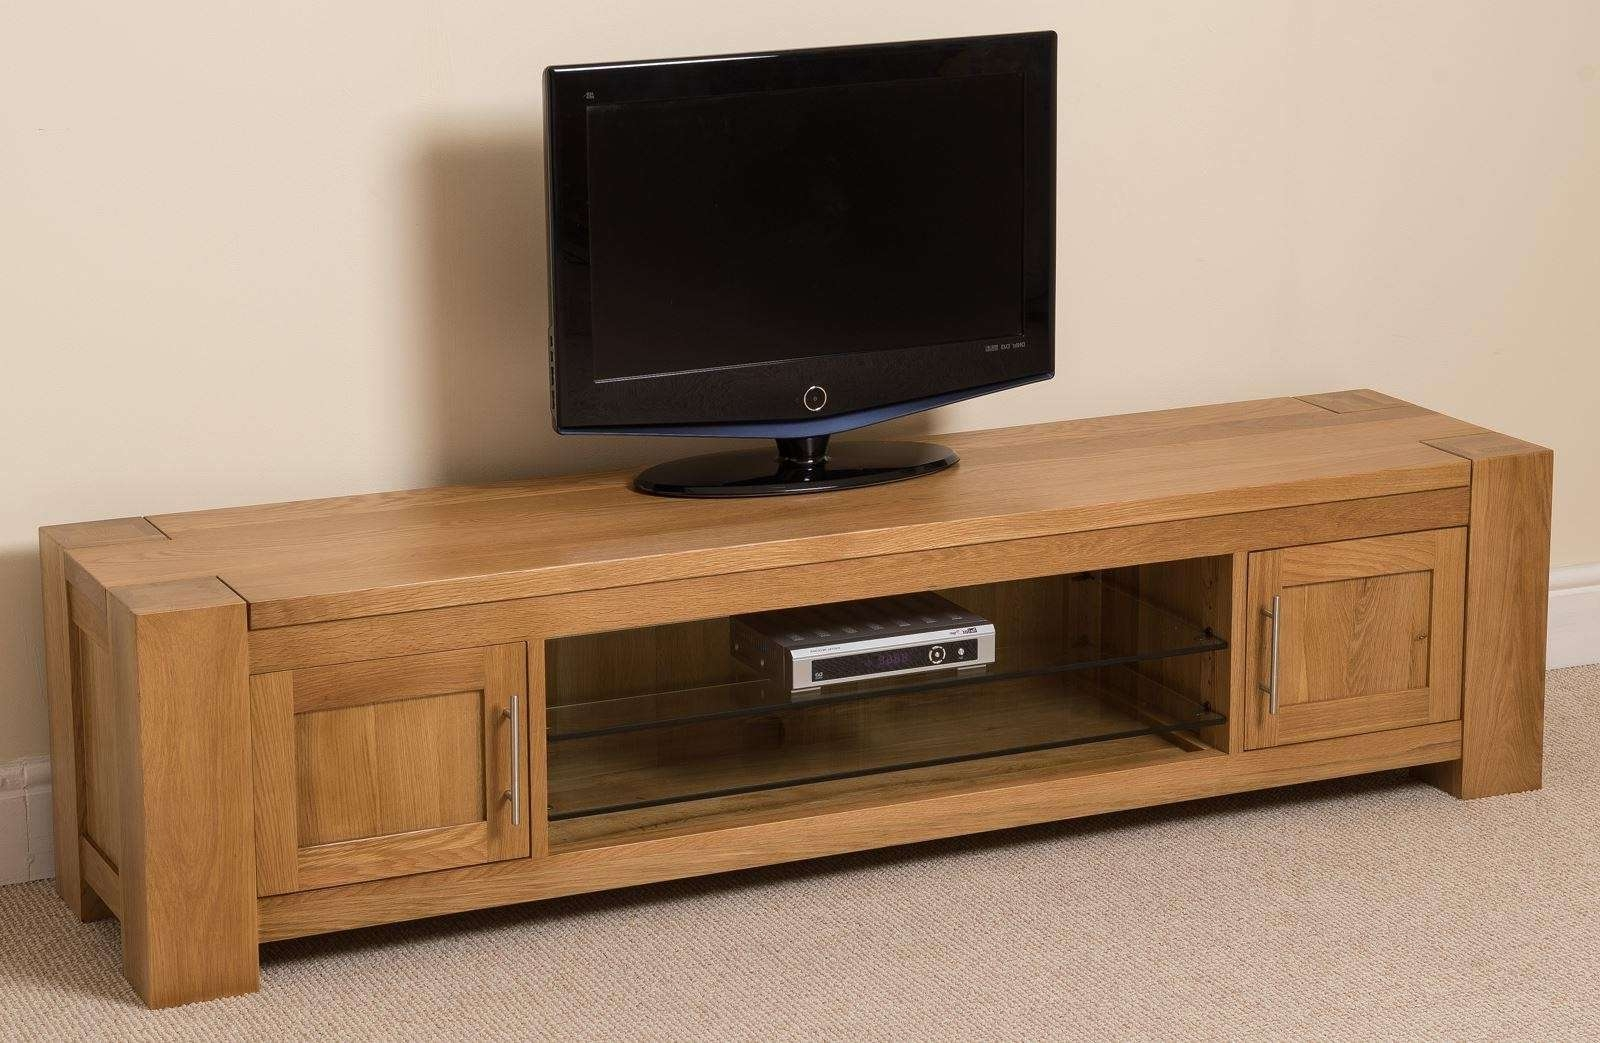 Kuba Solid Widescreen Tv Cabinet | Oak Furniture King With Regard To Wide Screen Tv Stands (View 6 of 15)